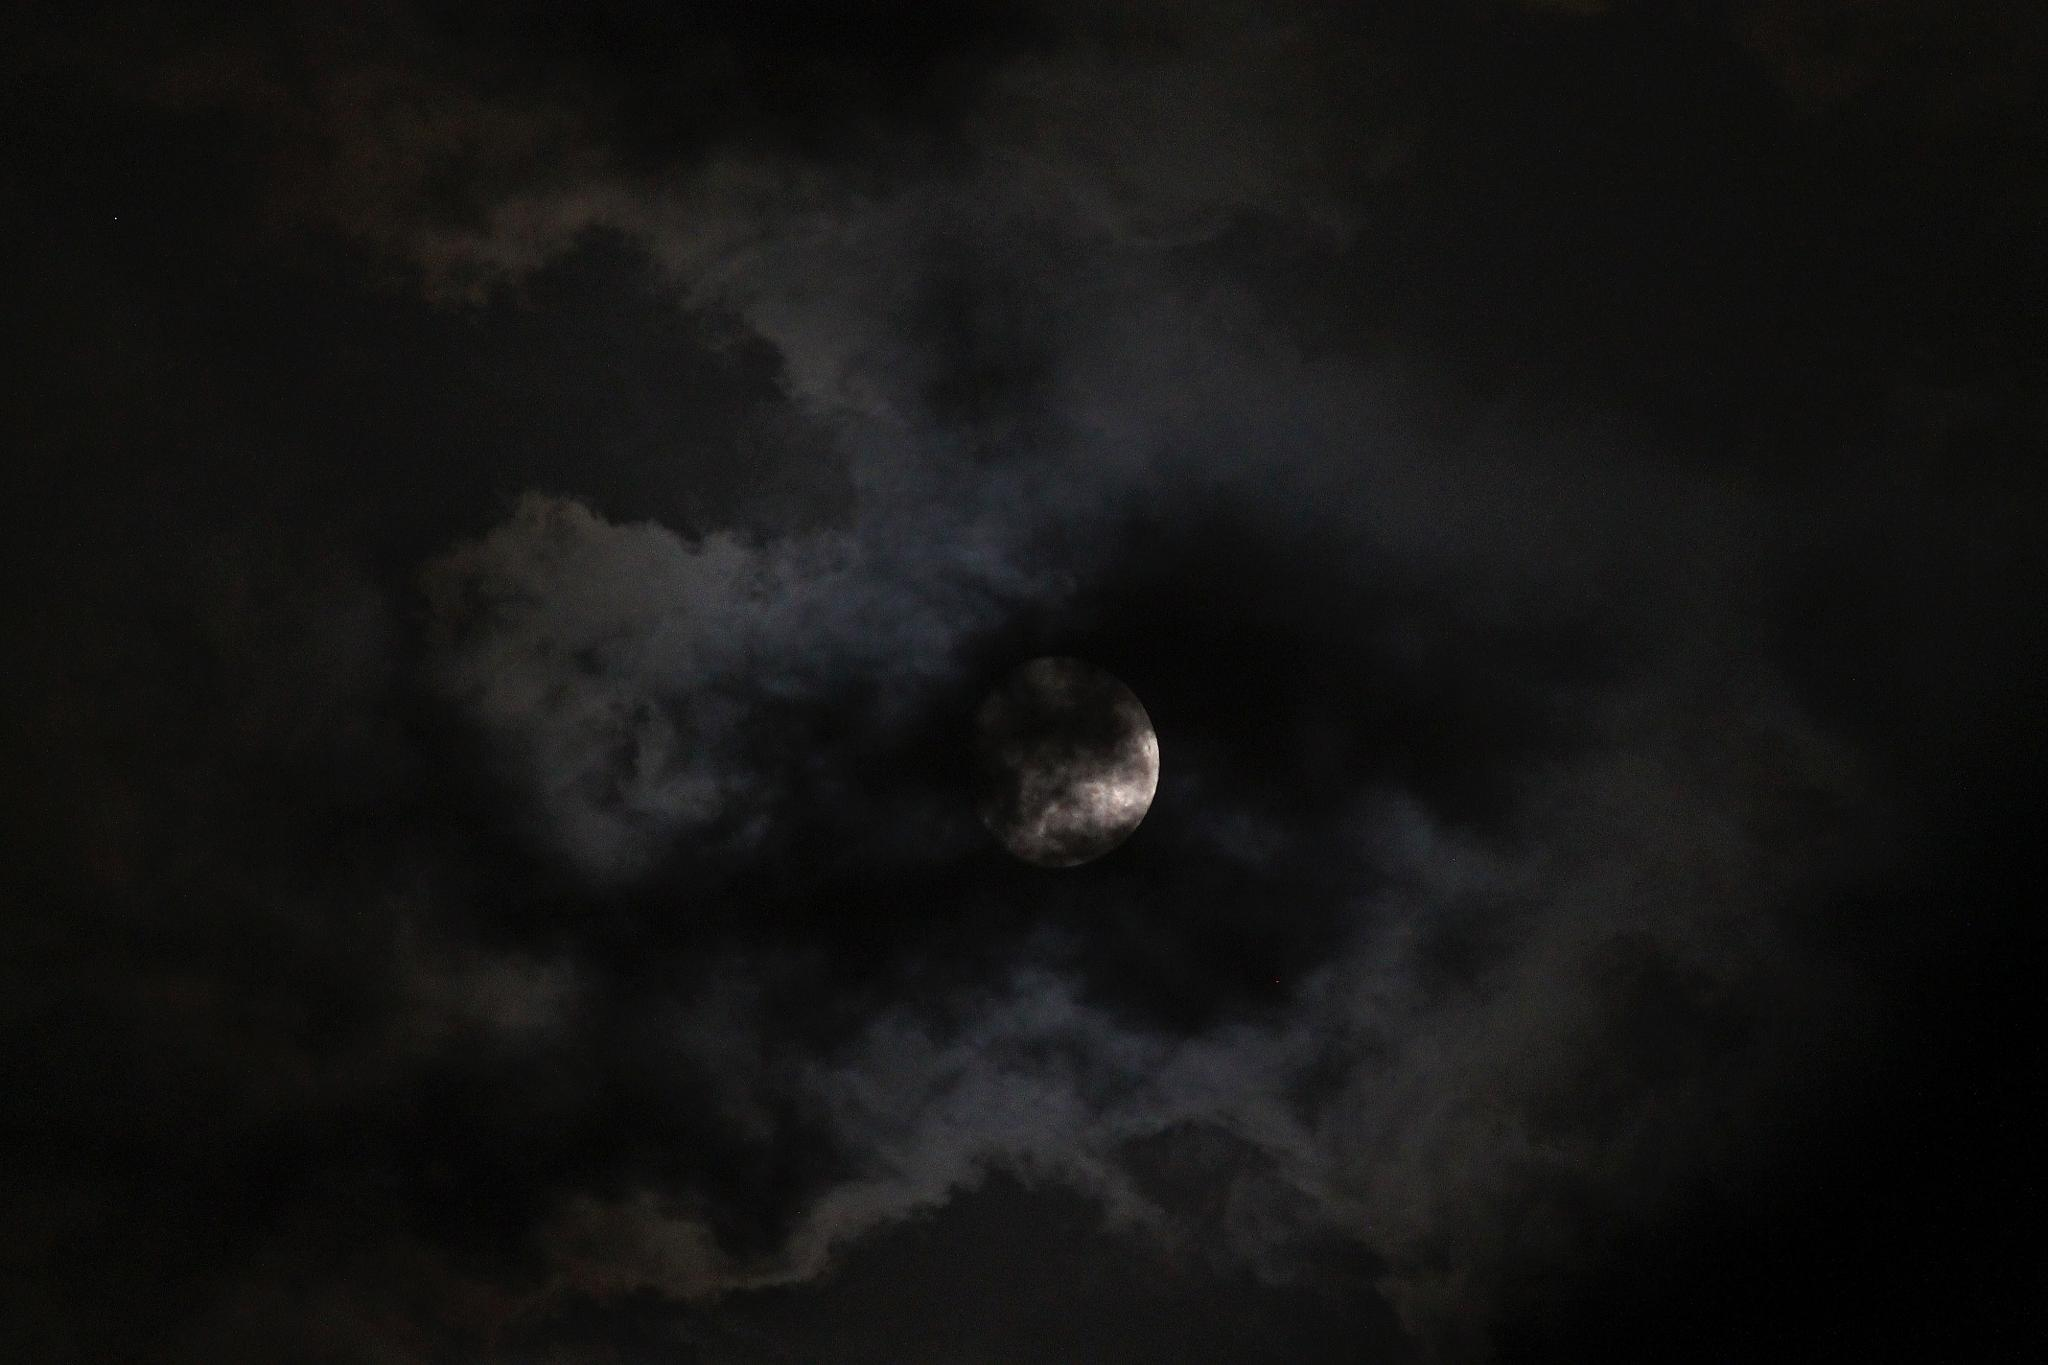 Moon with clouds 2 by ananthatejas